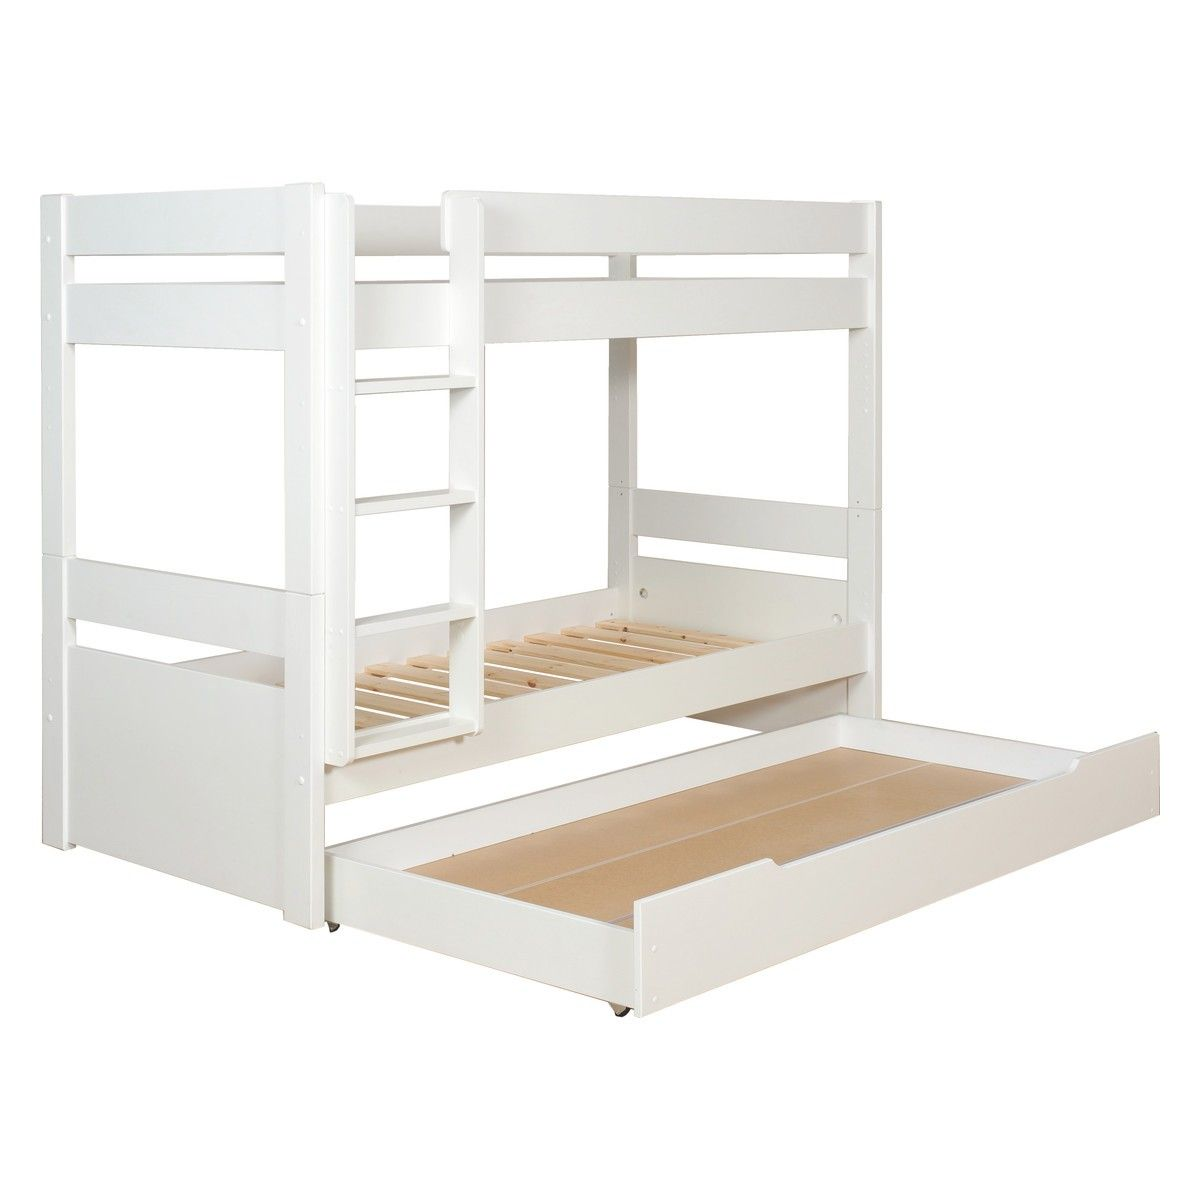 Pongo White Kid S Eu Single Detachable Bunk Bed With Storage Drawer 90cm Now At Habitat Uk